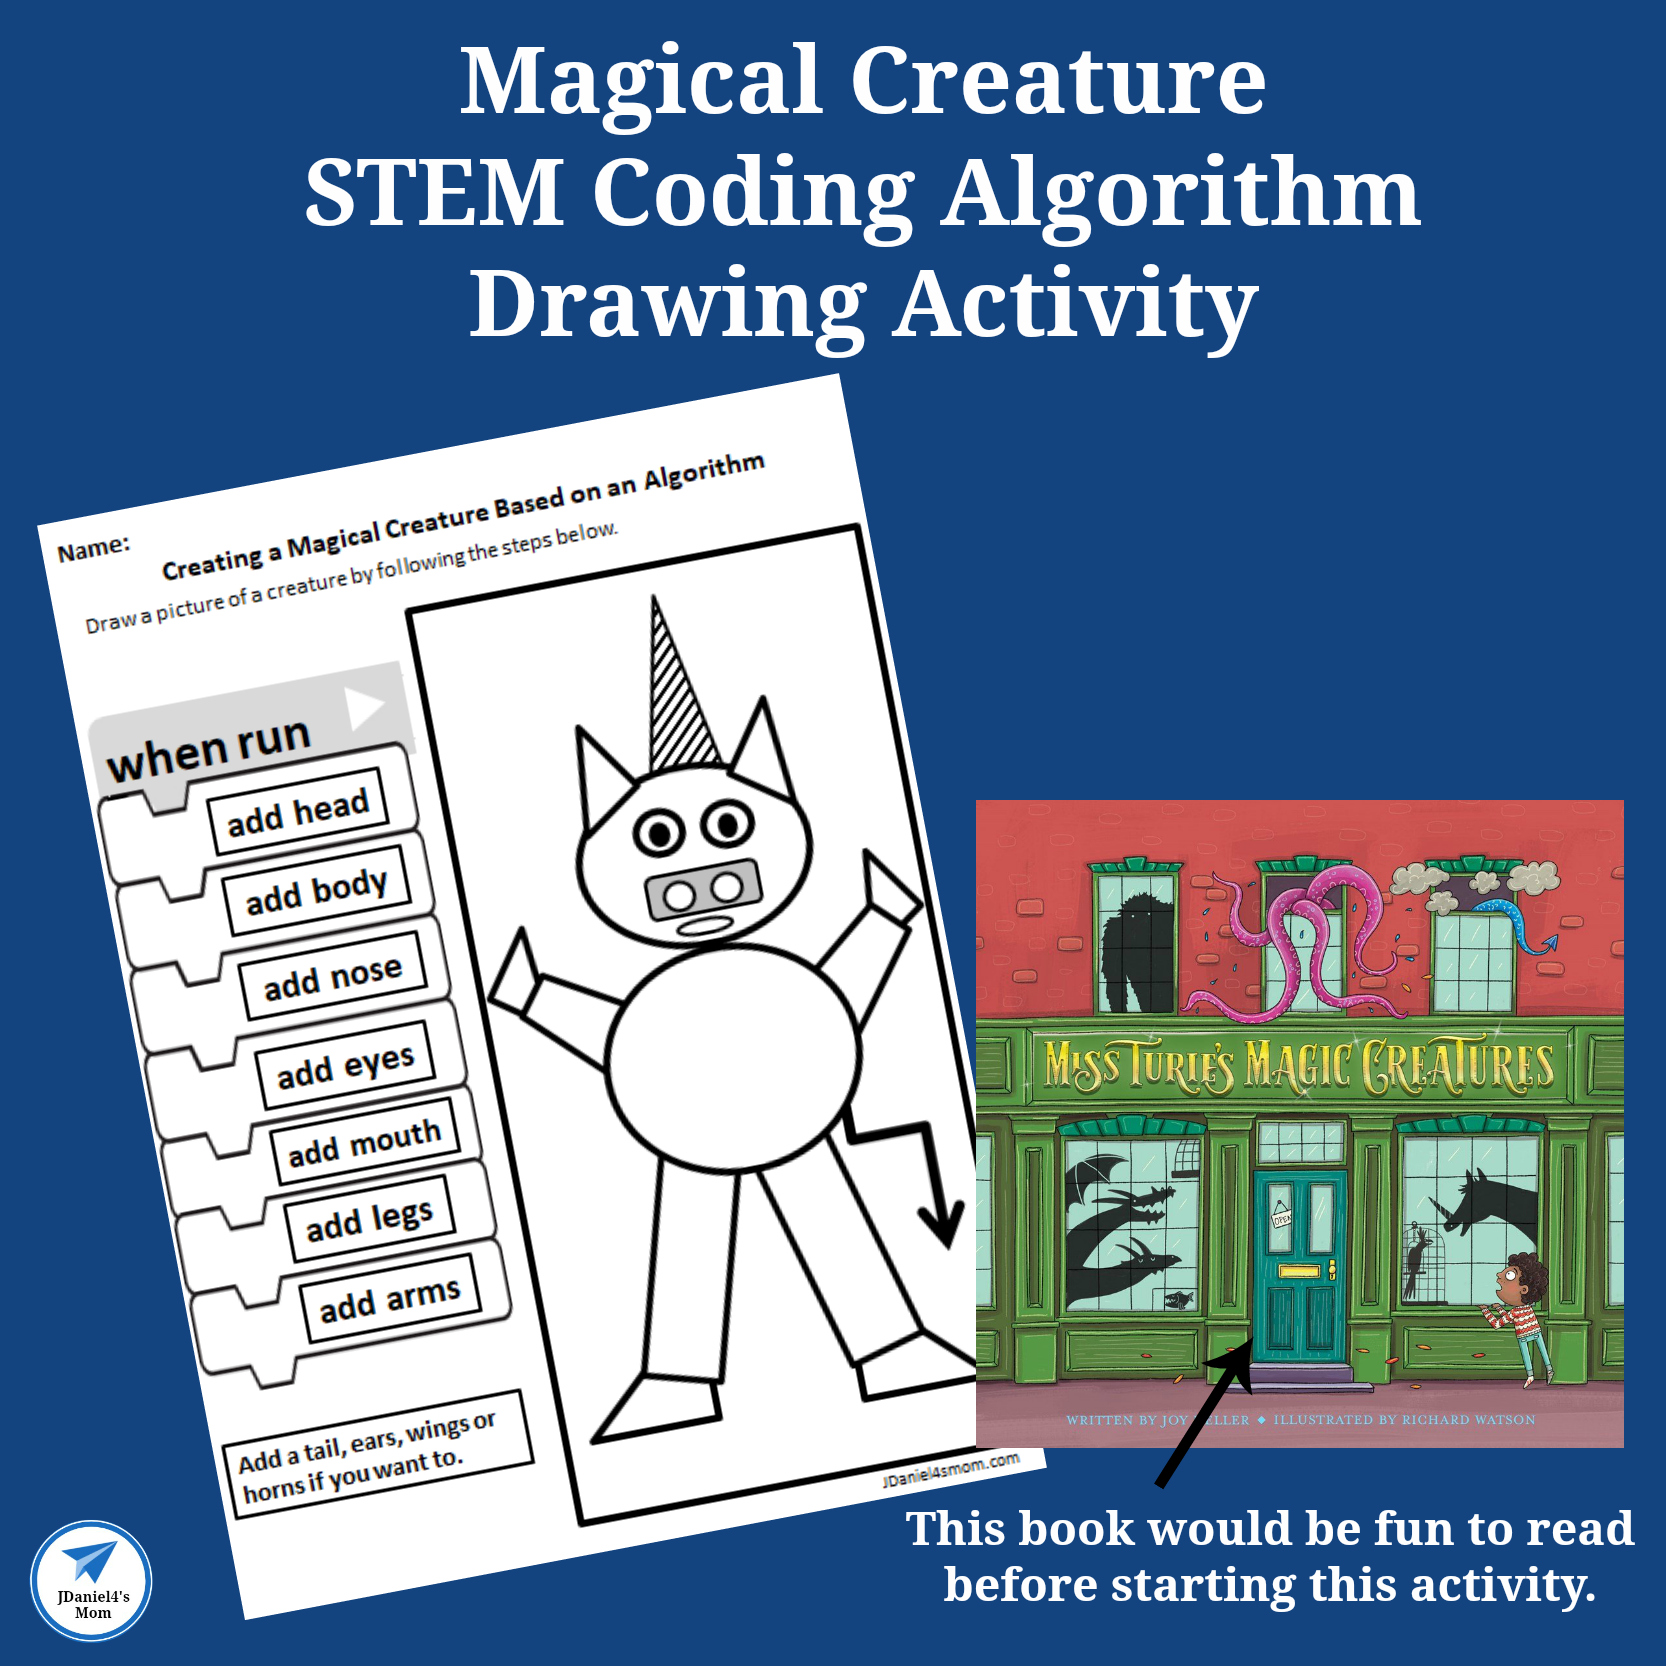 Magical Creatures Stem Coding Algorithm Drawing Activity